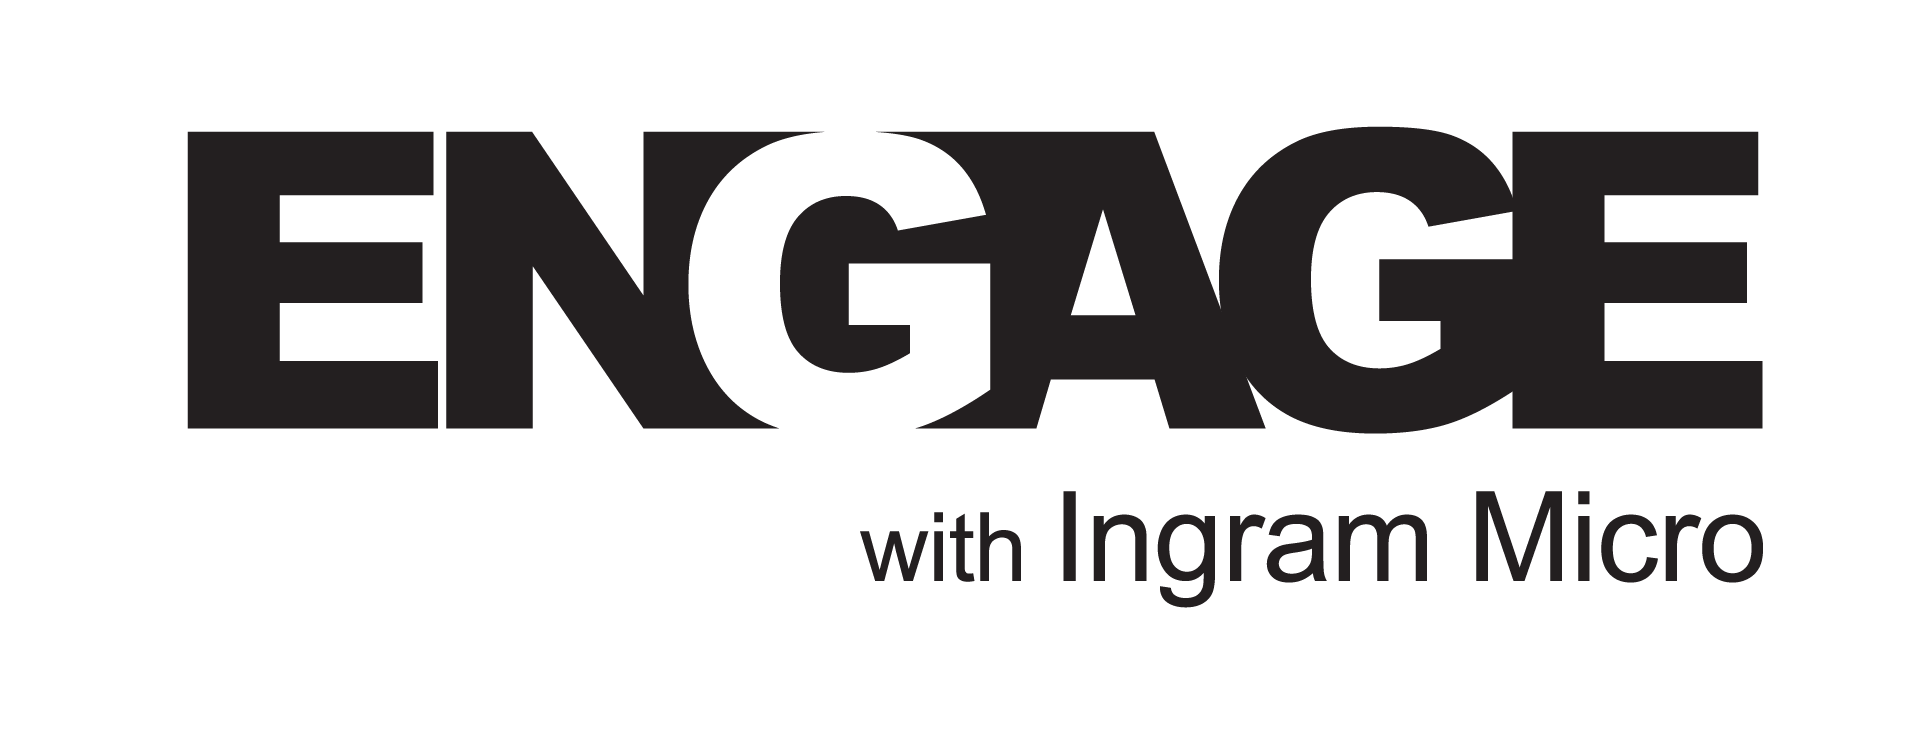 ENGAGE with Ingram Micro